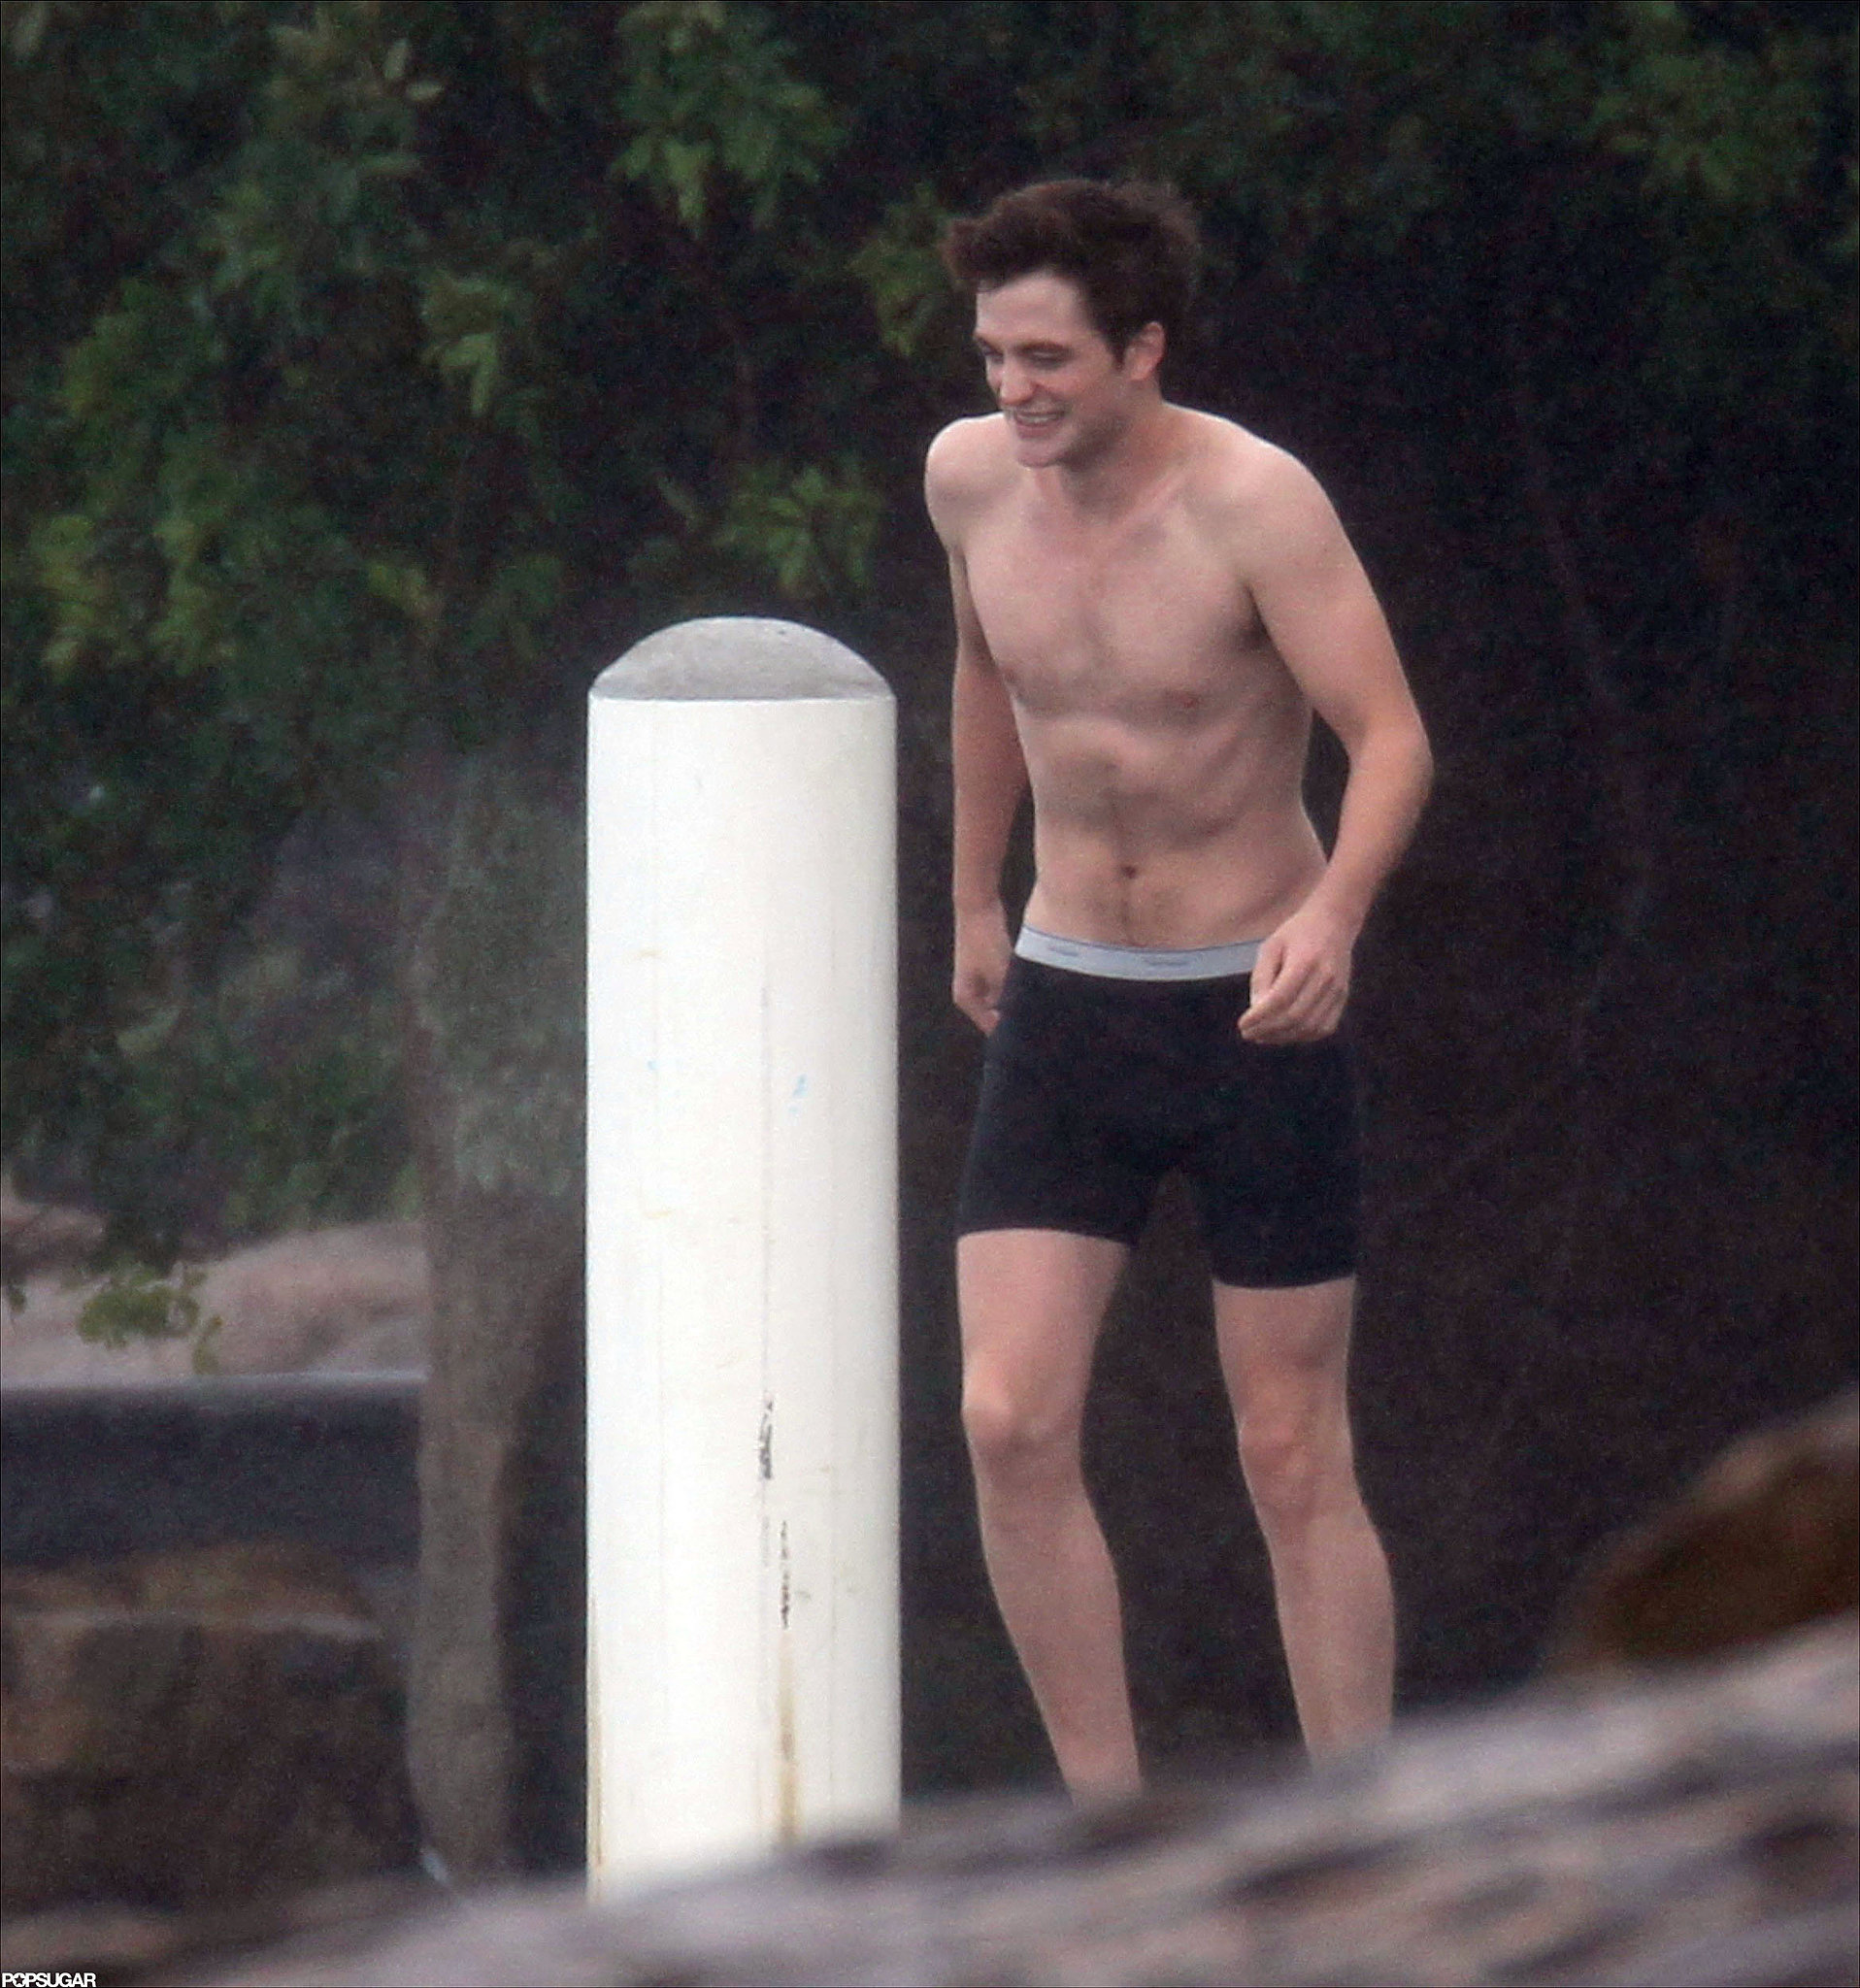 Robert Pattinson took off his shirt to jump in the water in Rio de Janeiro in December 2010.